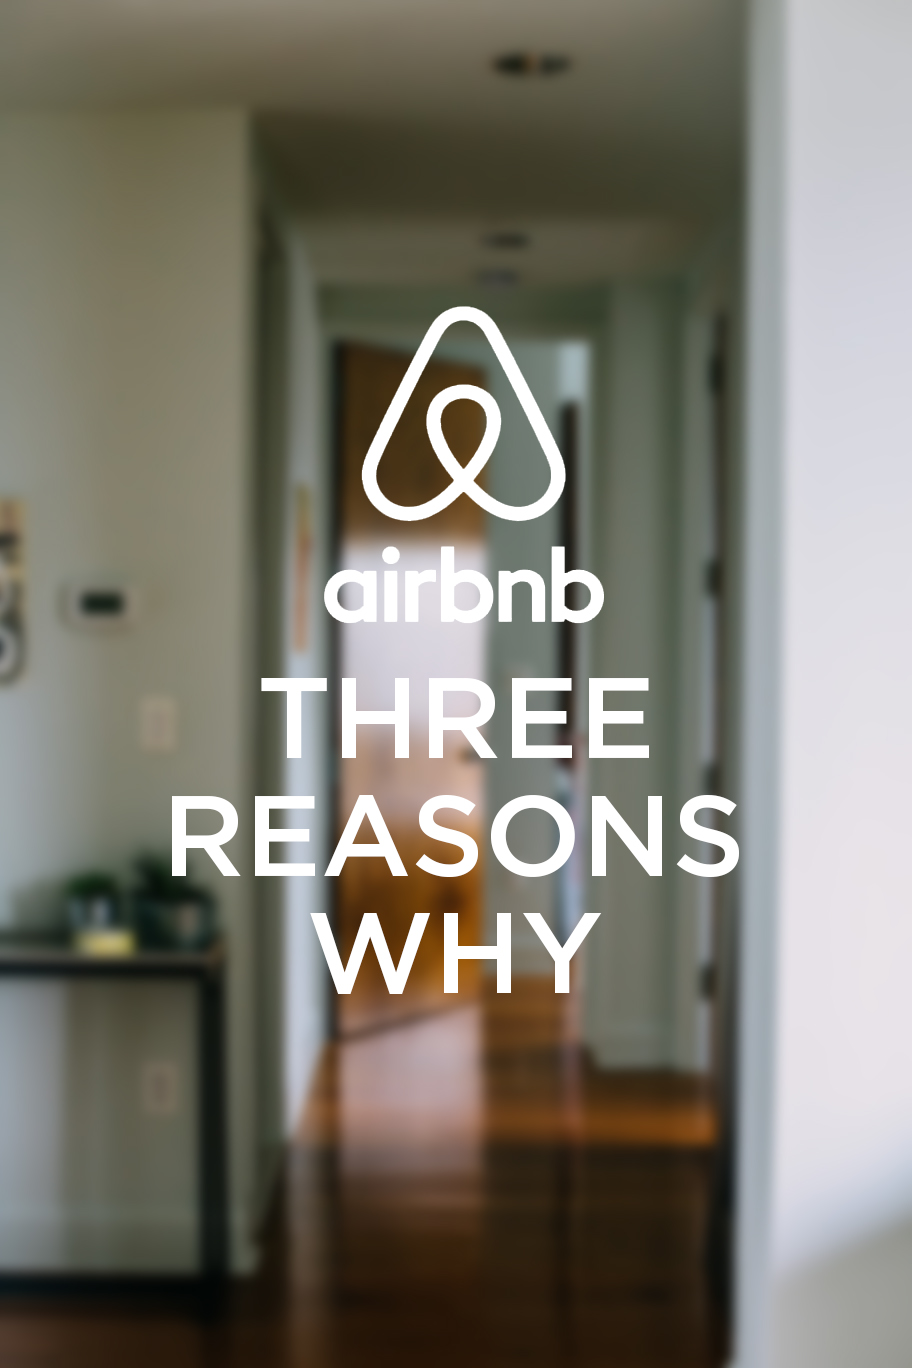 airbnb-three-reasons-why.jpg